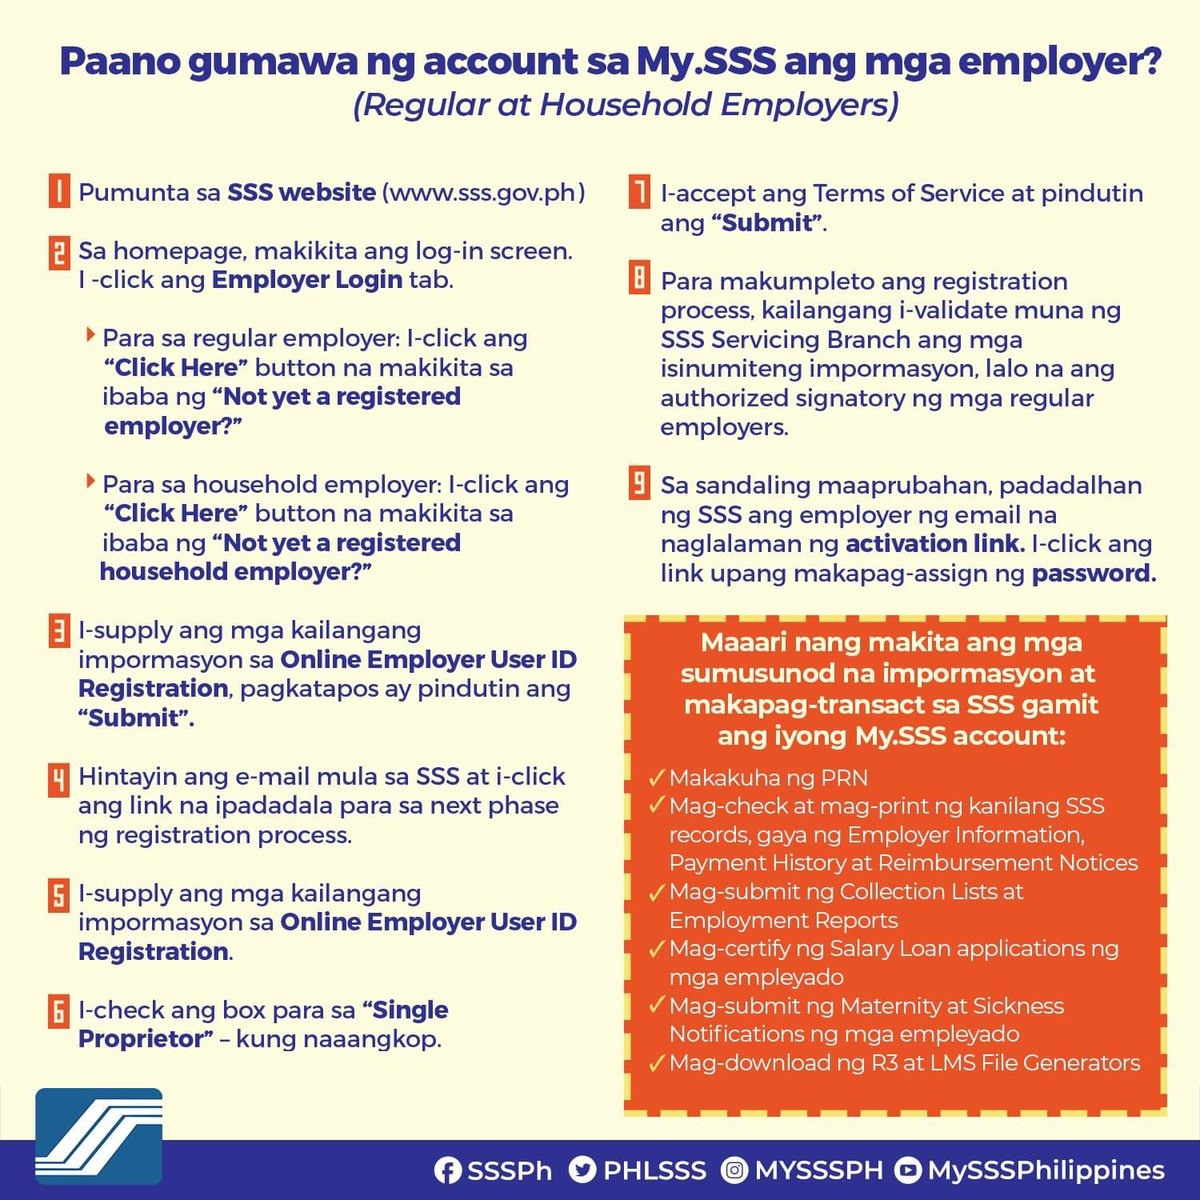 Social Security System On Twitter Mga Sss Employers Mag Register Na Sa My Sss Pwede Na Rin Ang Bank Enrollment Para Mas Madali Nang Matanggap Ang Mga Benepisyo At Loans Https T Co Gruwbga80p